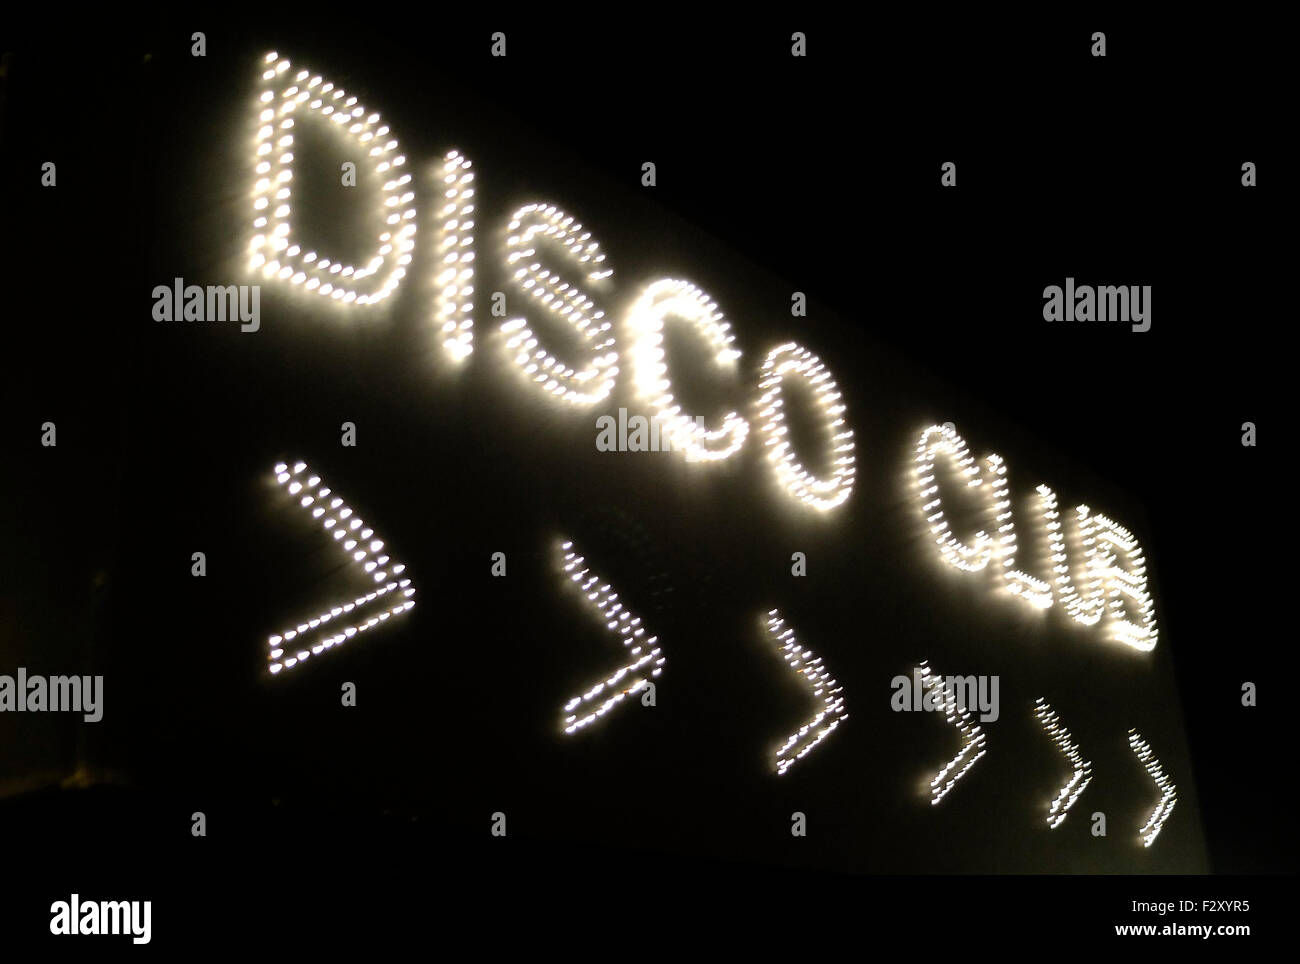 Neon sign disco club black and white shimmer - Stock Image